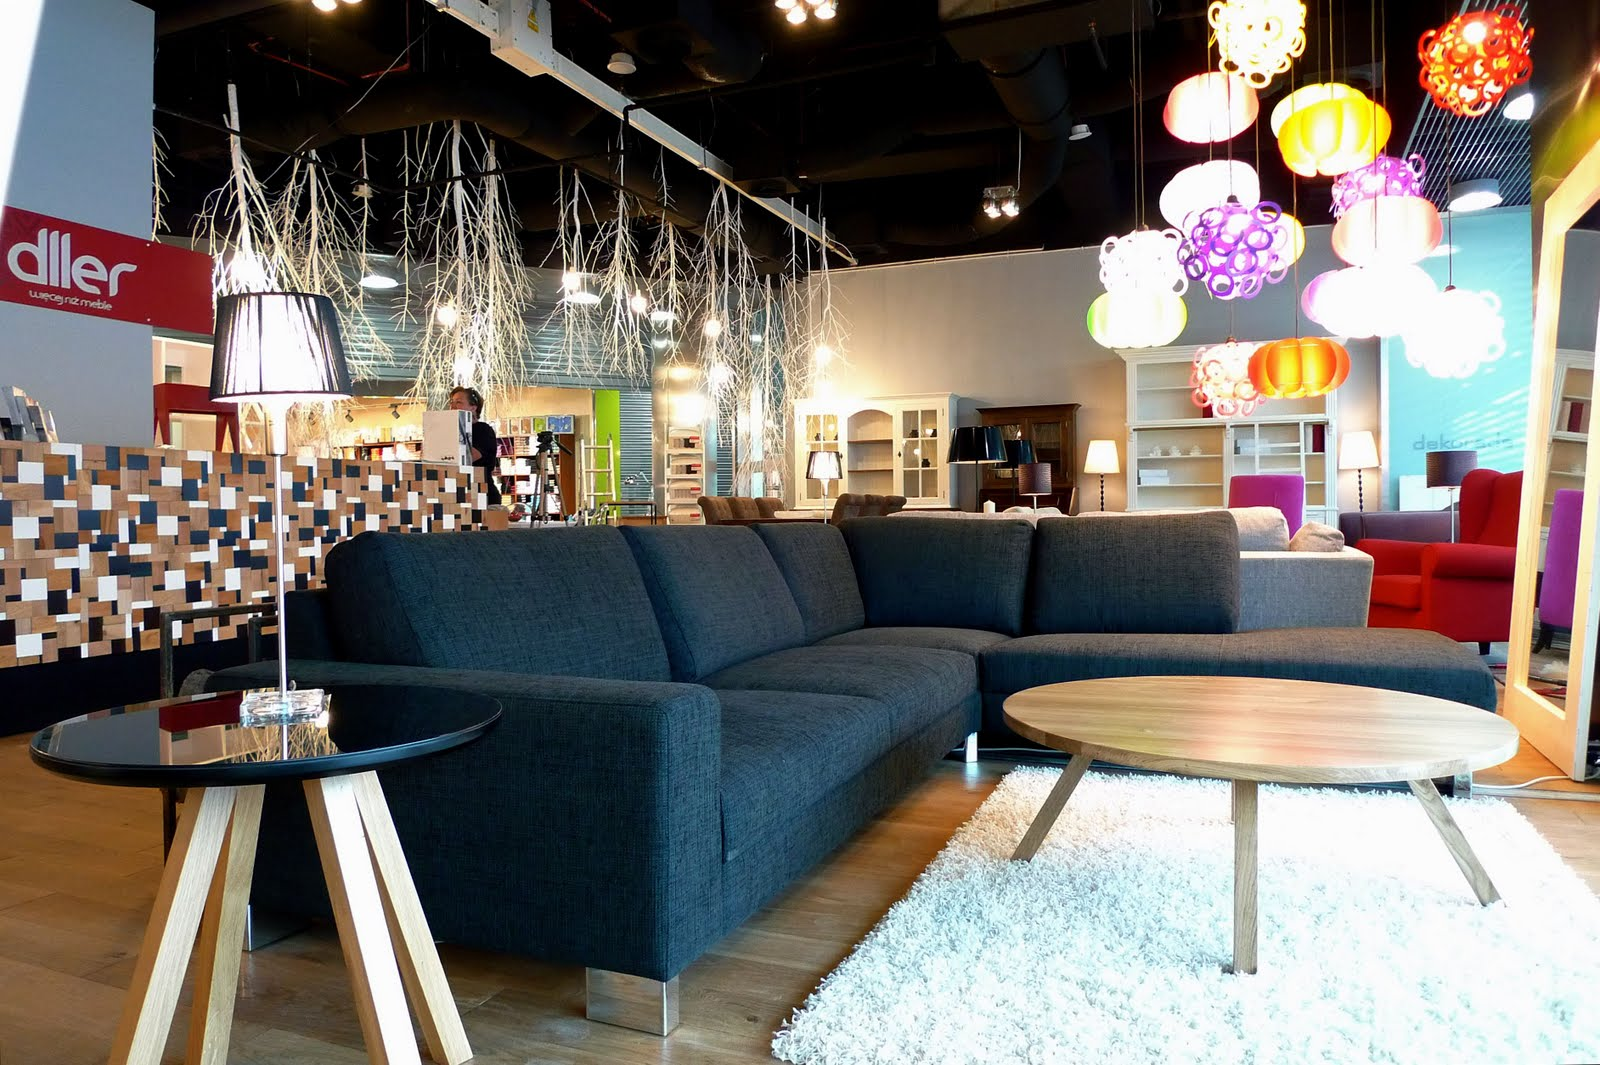 Dller Furniture Brand Recently Opened Its Second